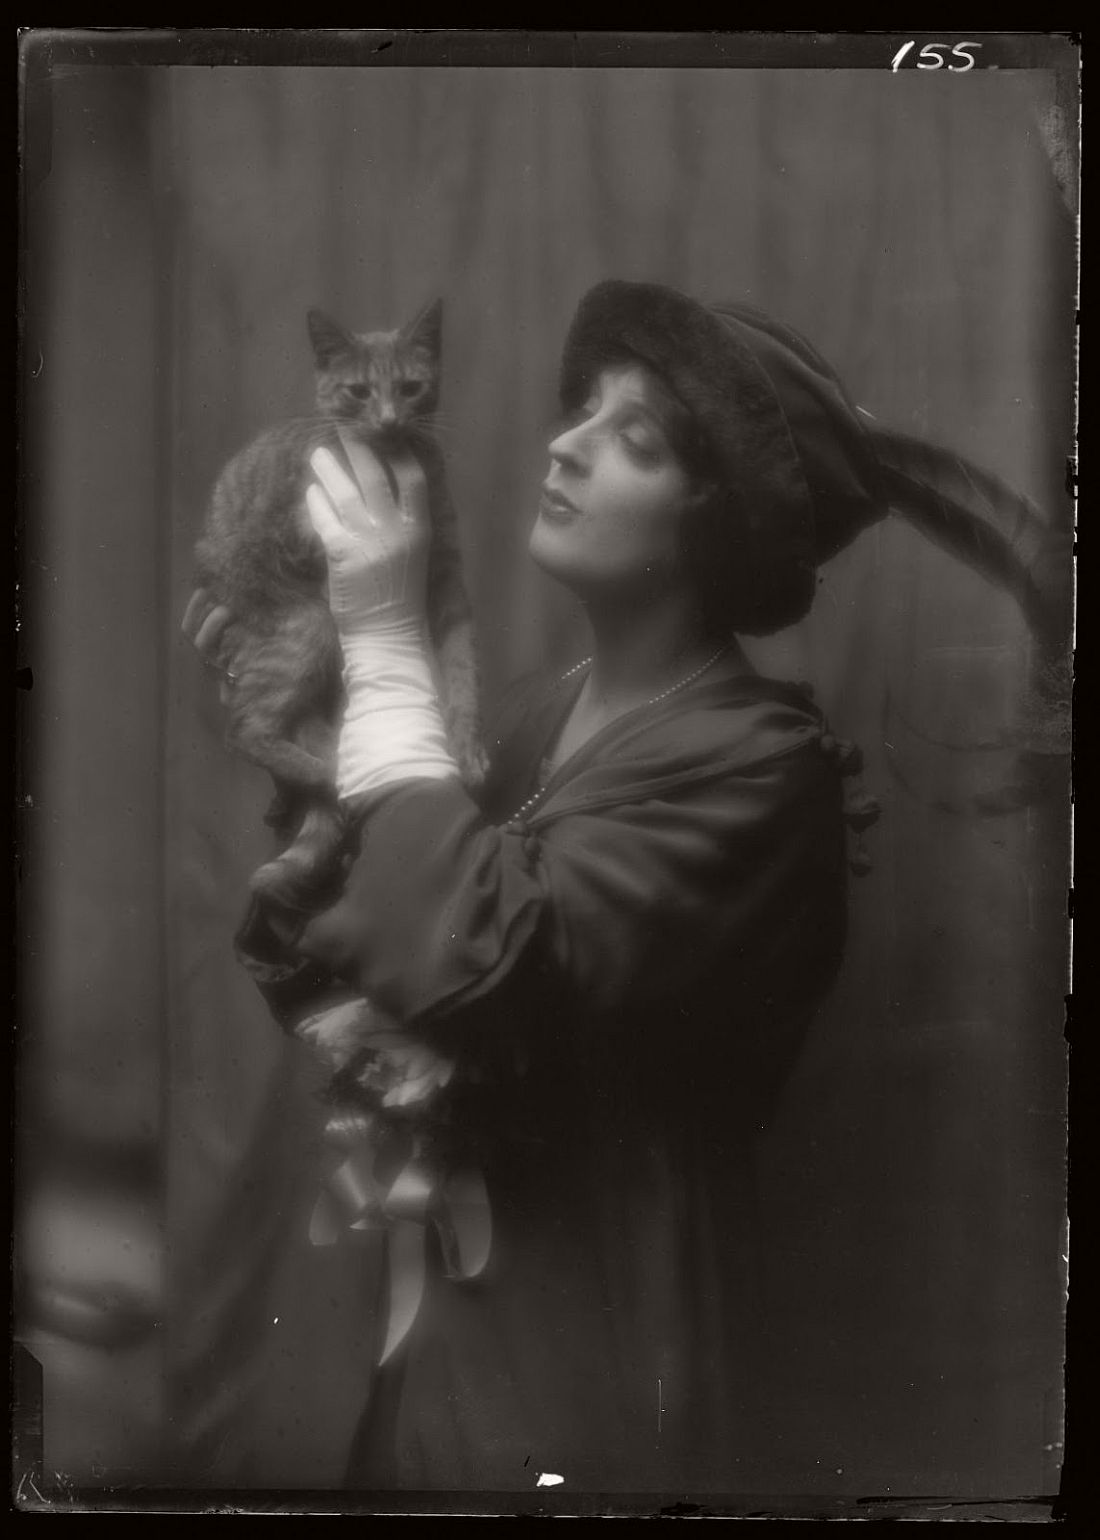 arnold-genthe-1910s-vintage-studio-portraits-of-girls-with-cat-09